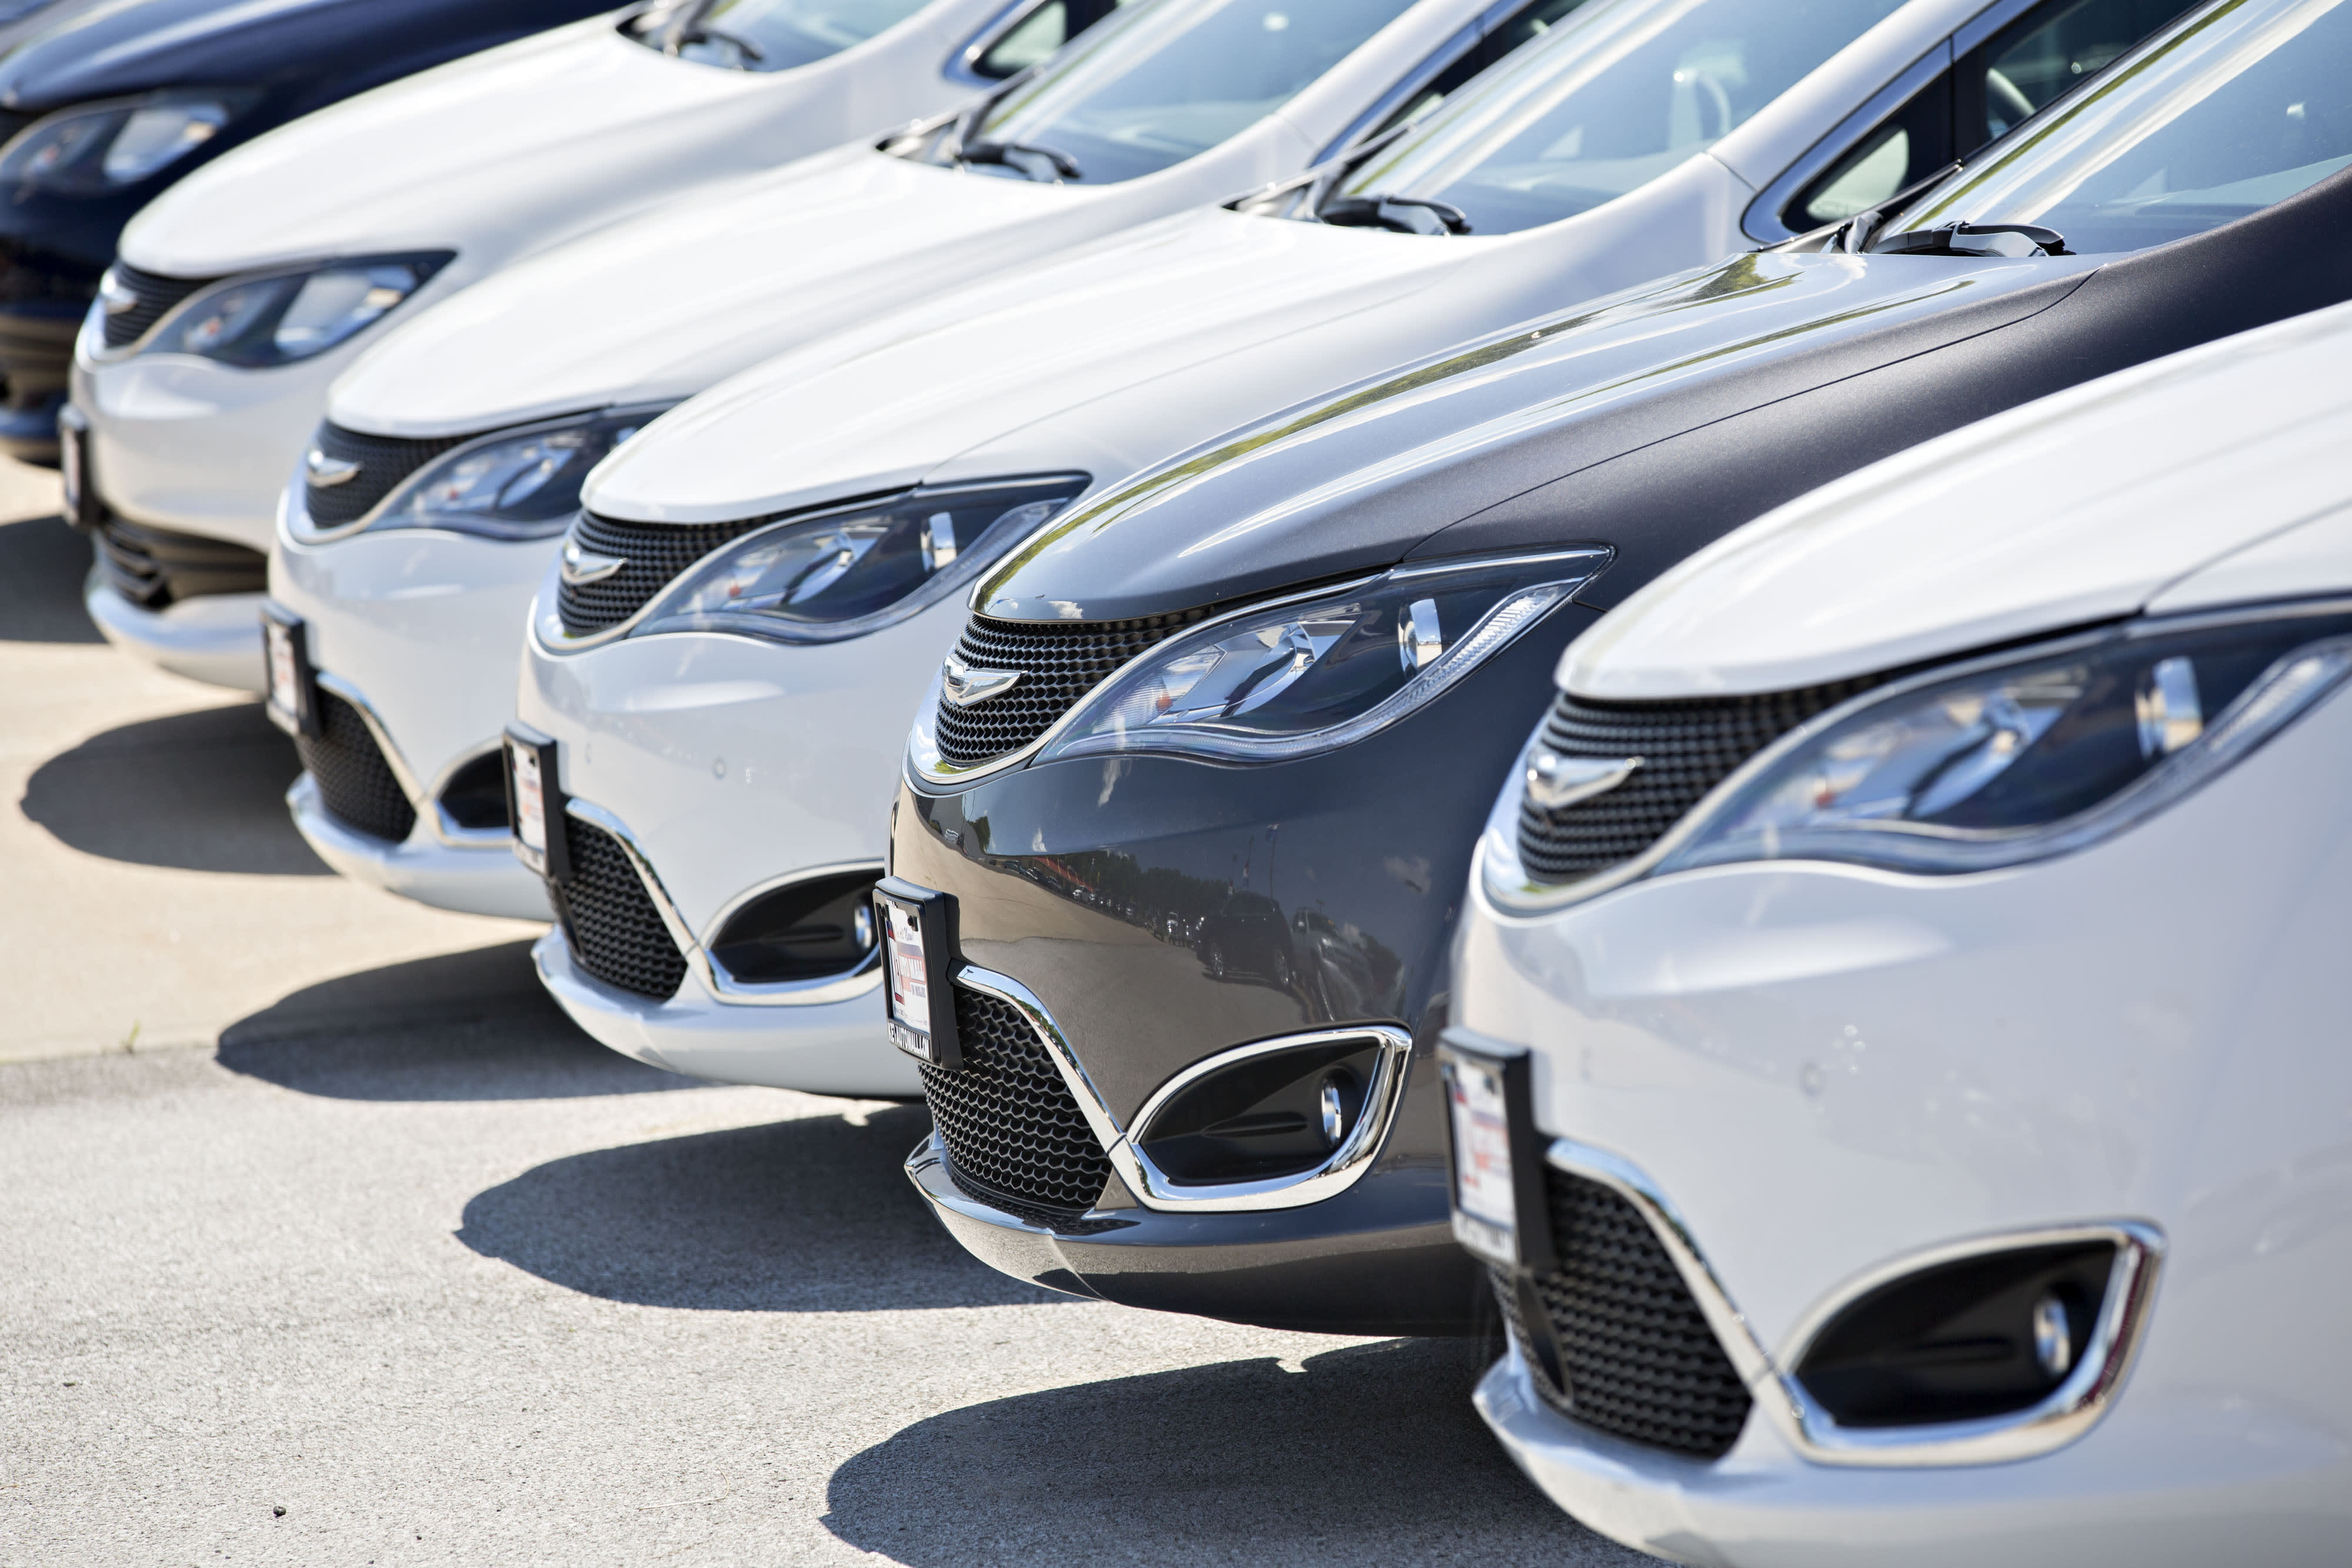 Fiat Chrysler submits proposal for a merger with Renault